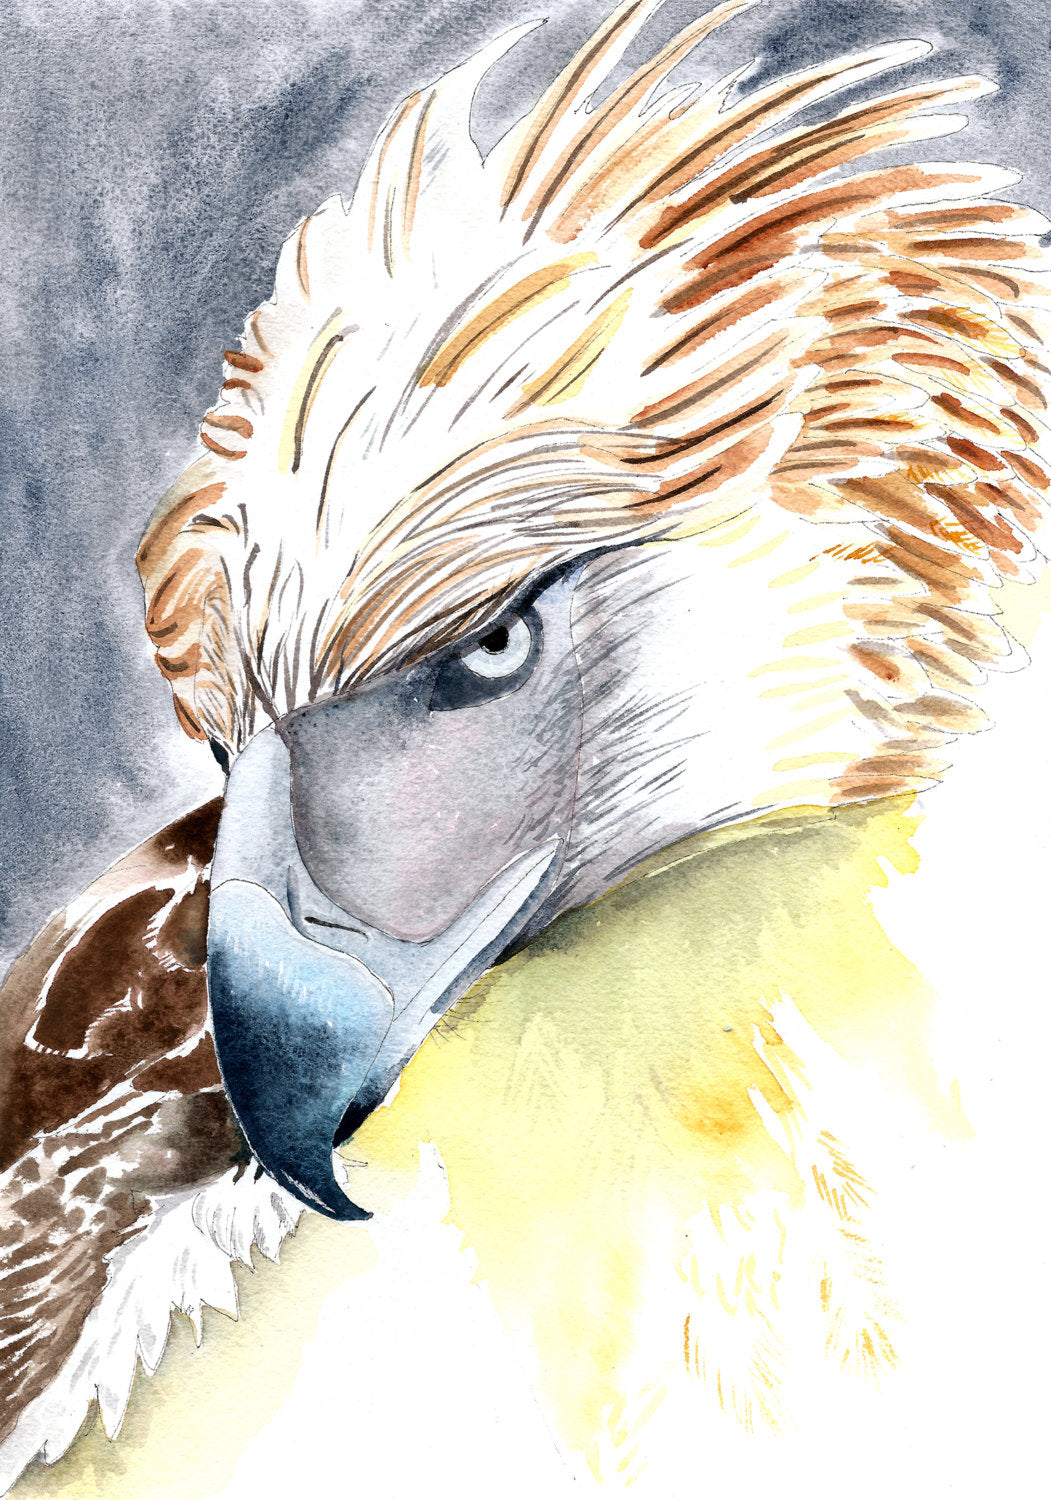 Phillippines Eagle|Spirit bird| Totem |Boys room wall art|Eagle art print|Gift for teenage boy|gift under 50|Watercolor eagle art|wildlife